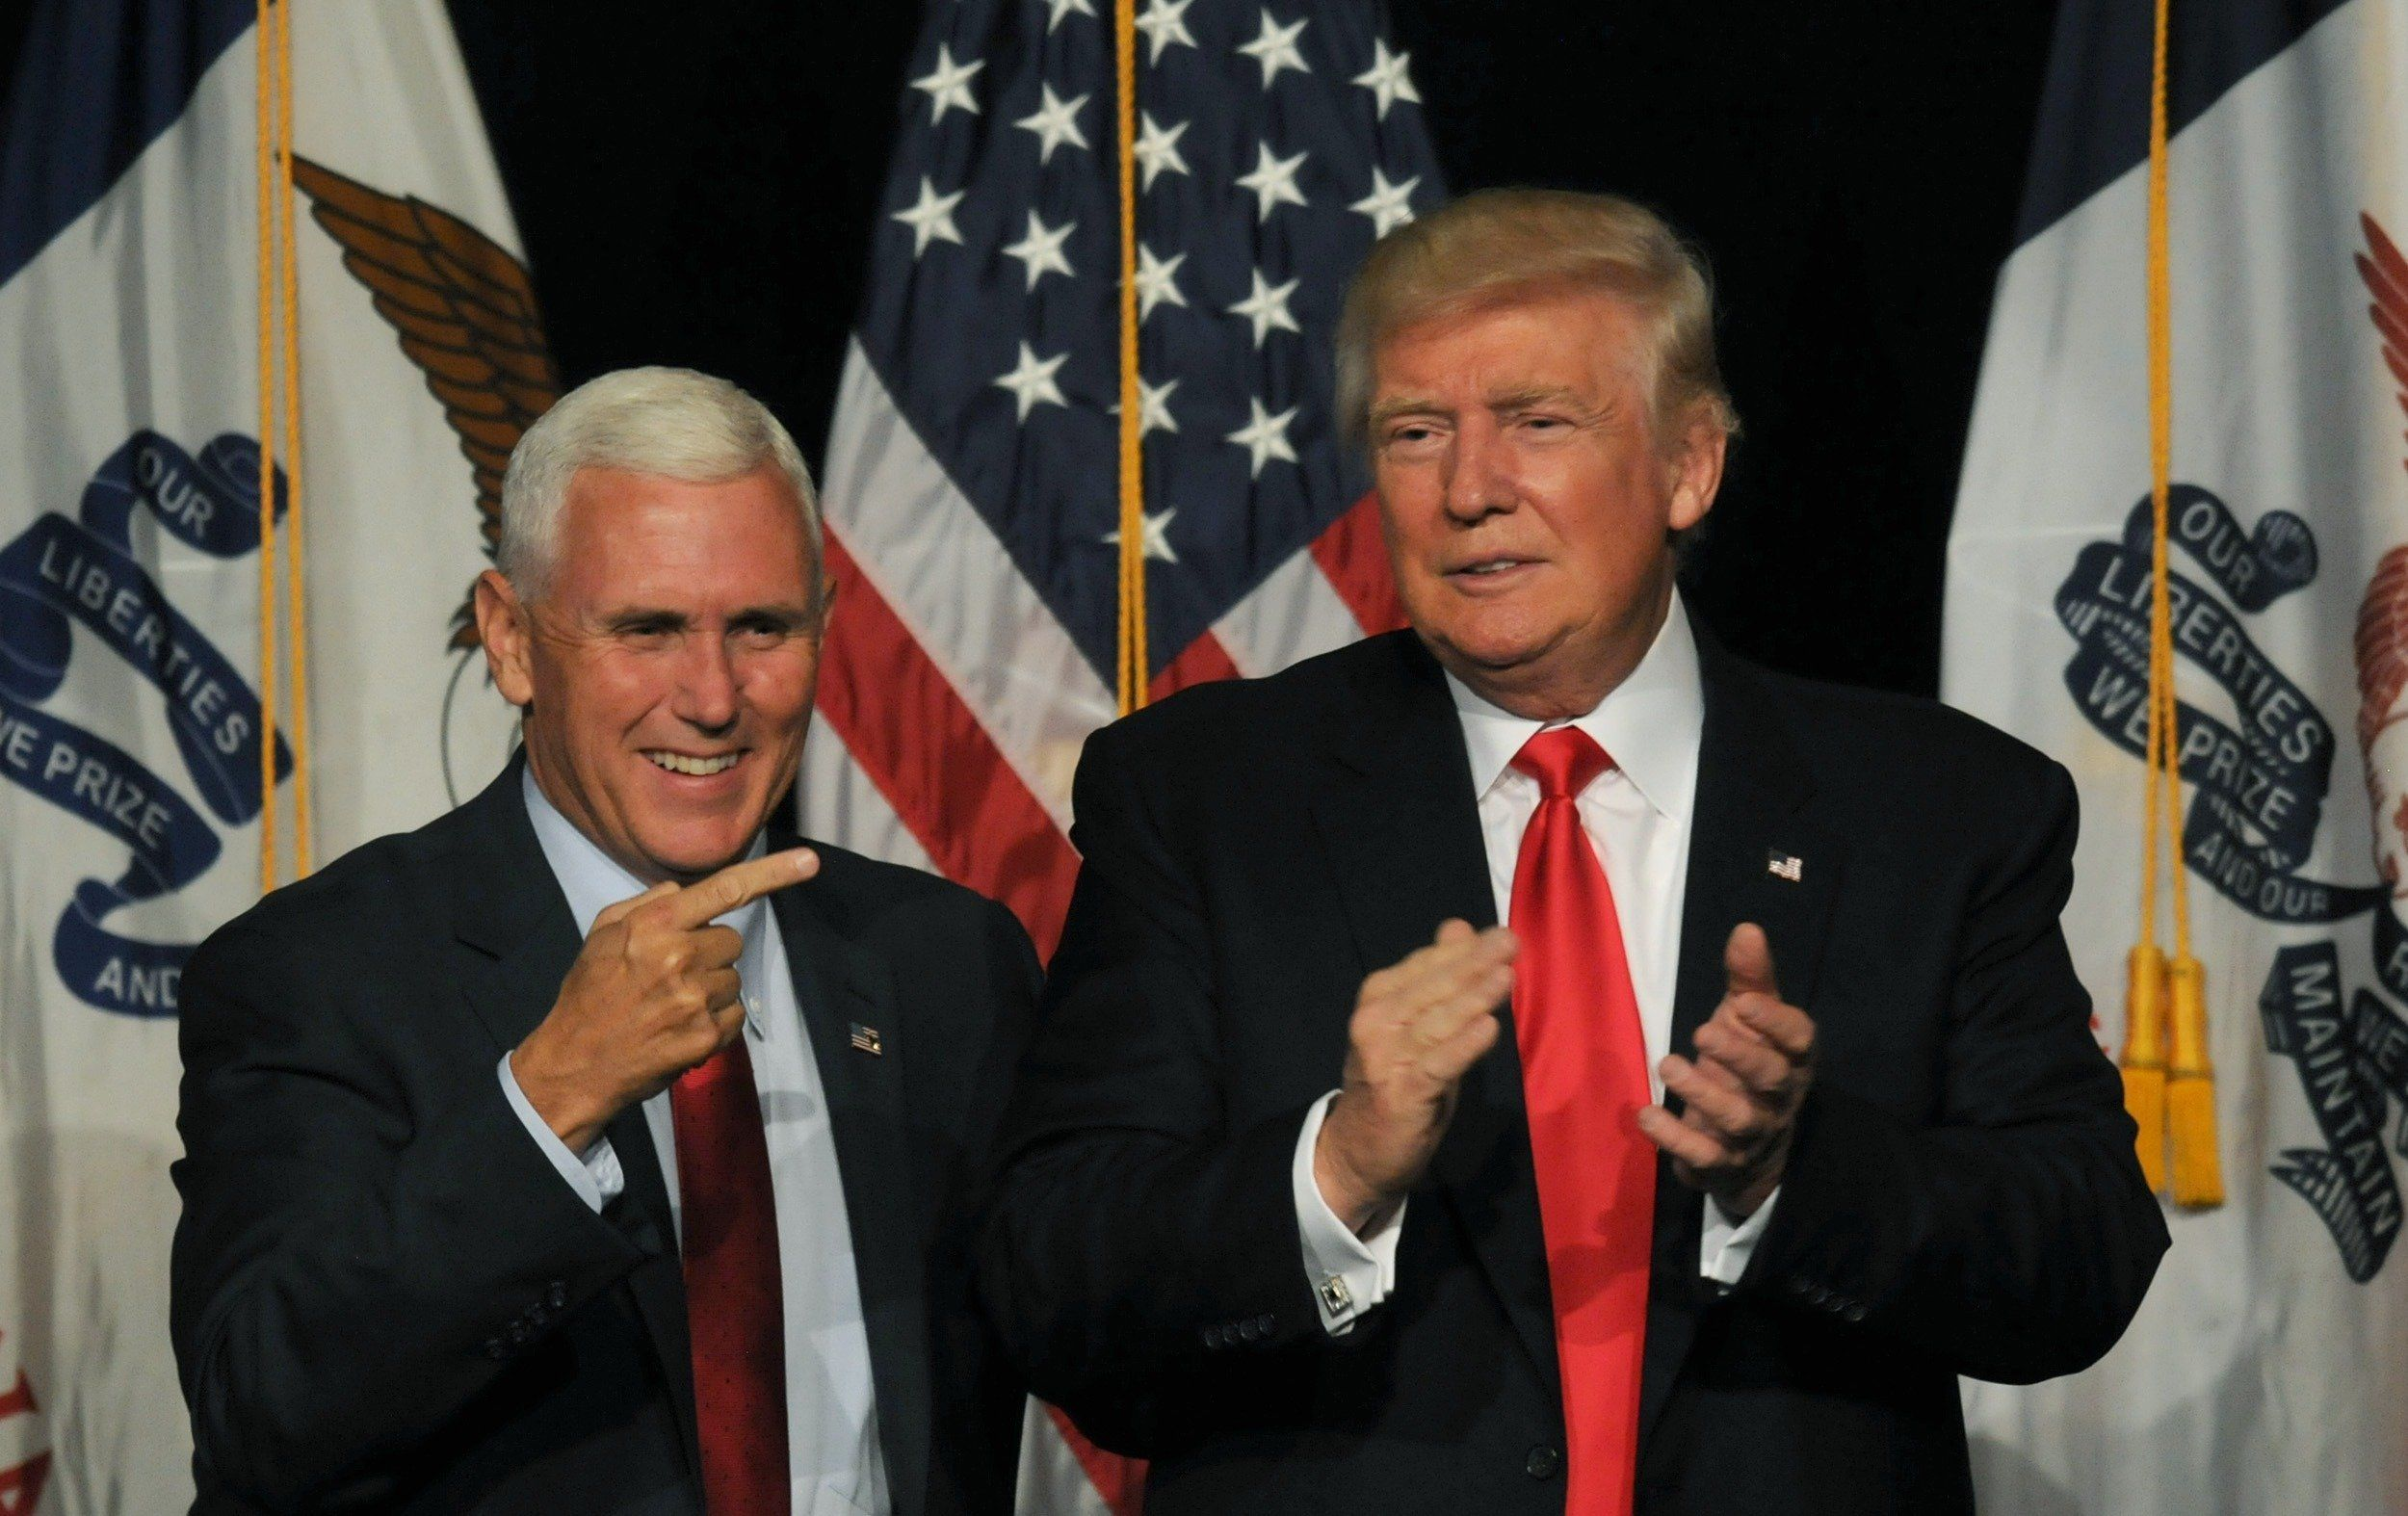 DES MOINES, IA - AUGUST 5 : Republican Presidential Candidate Donald Trump and Vice Presidential candidate, Indiana Governor Mike Pence greets supporters at a rally at the Iowa Events Center in Des Moines, Iowa on Friday August, 5, 2016. (Photo by Steve Pope/Getty Images)